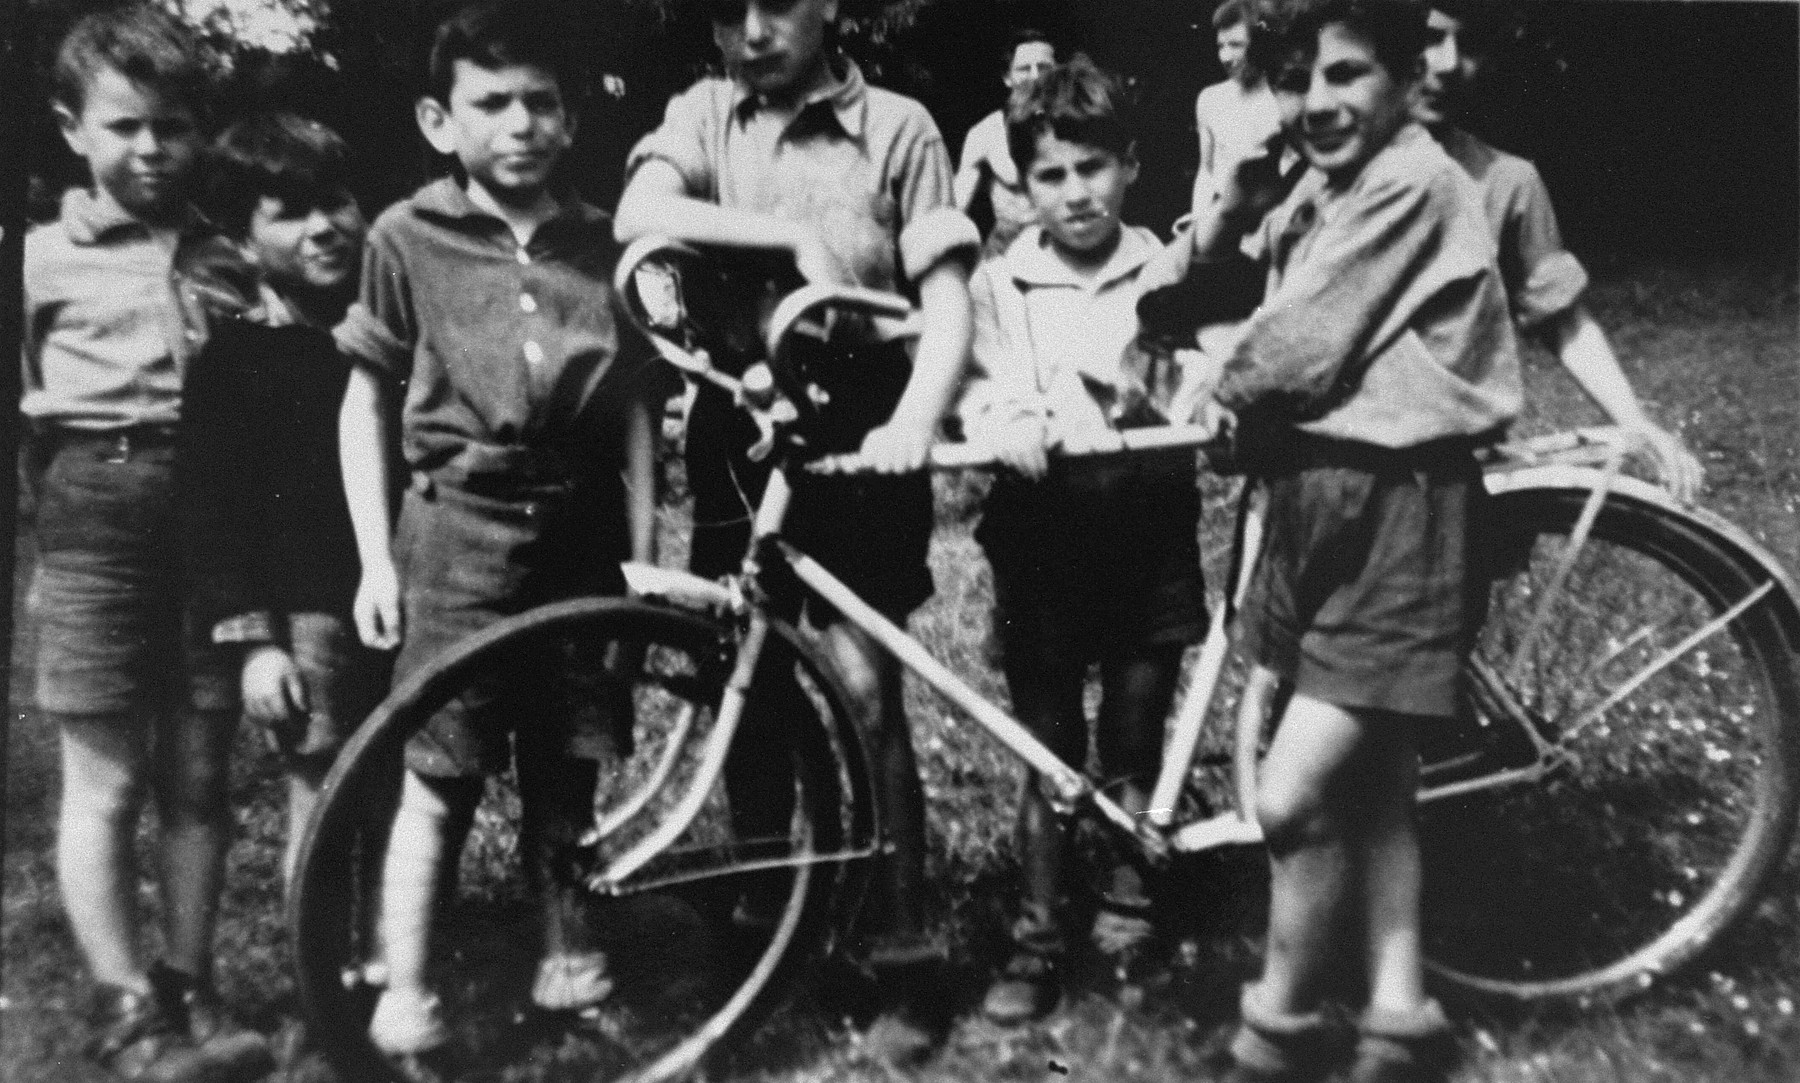 Jewish children at the OSE home in Draveil stand next to a bicycle.